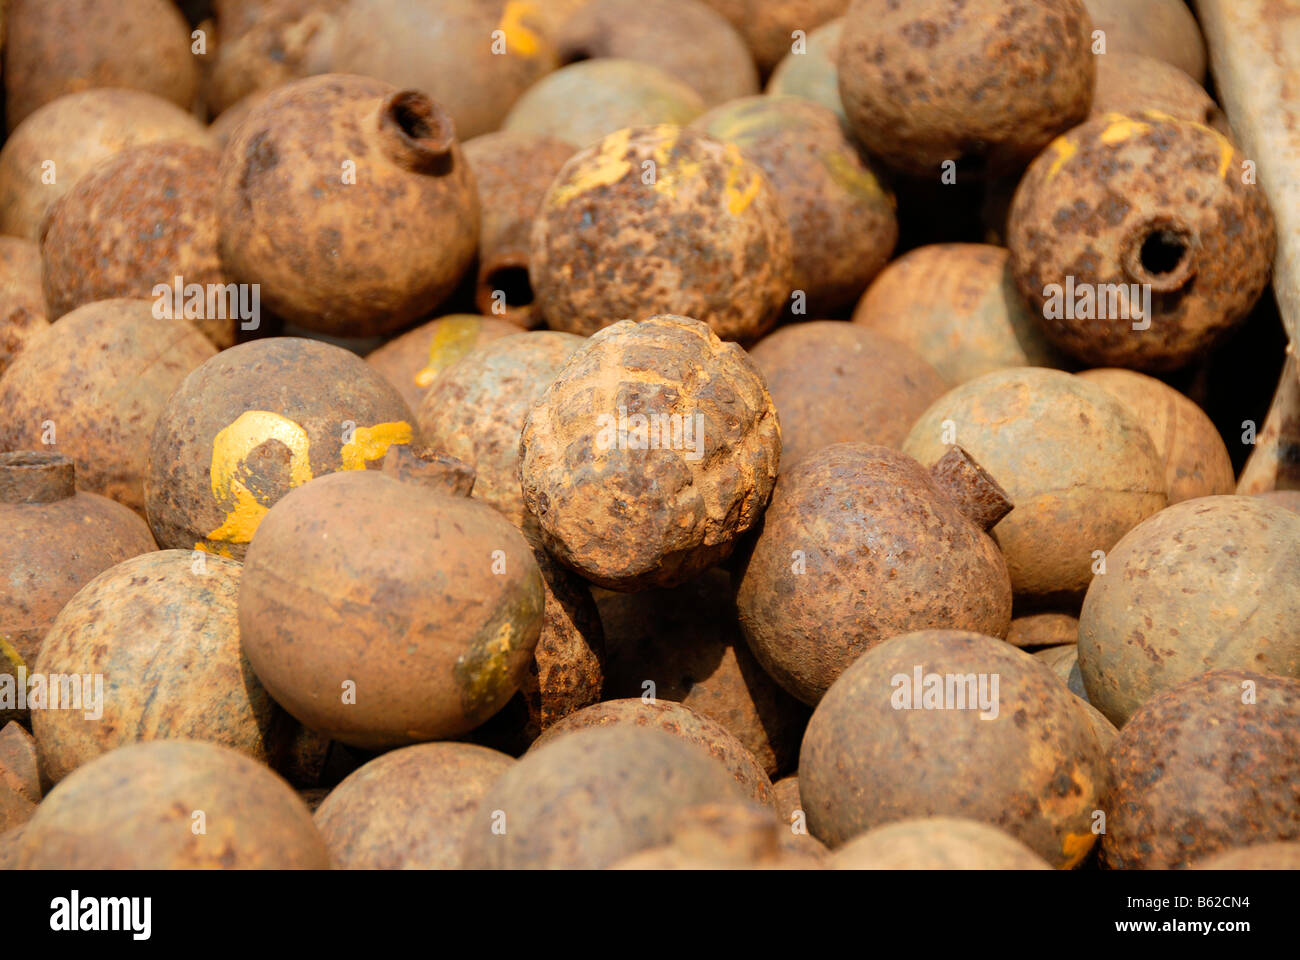 Collection of old rusty American bombs, 'Bombies', dropped on Laos during the 2nd Indochina war by the US - Stock Image